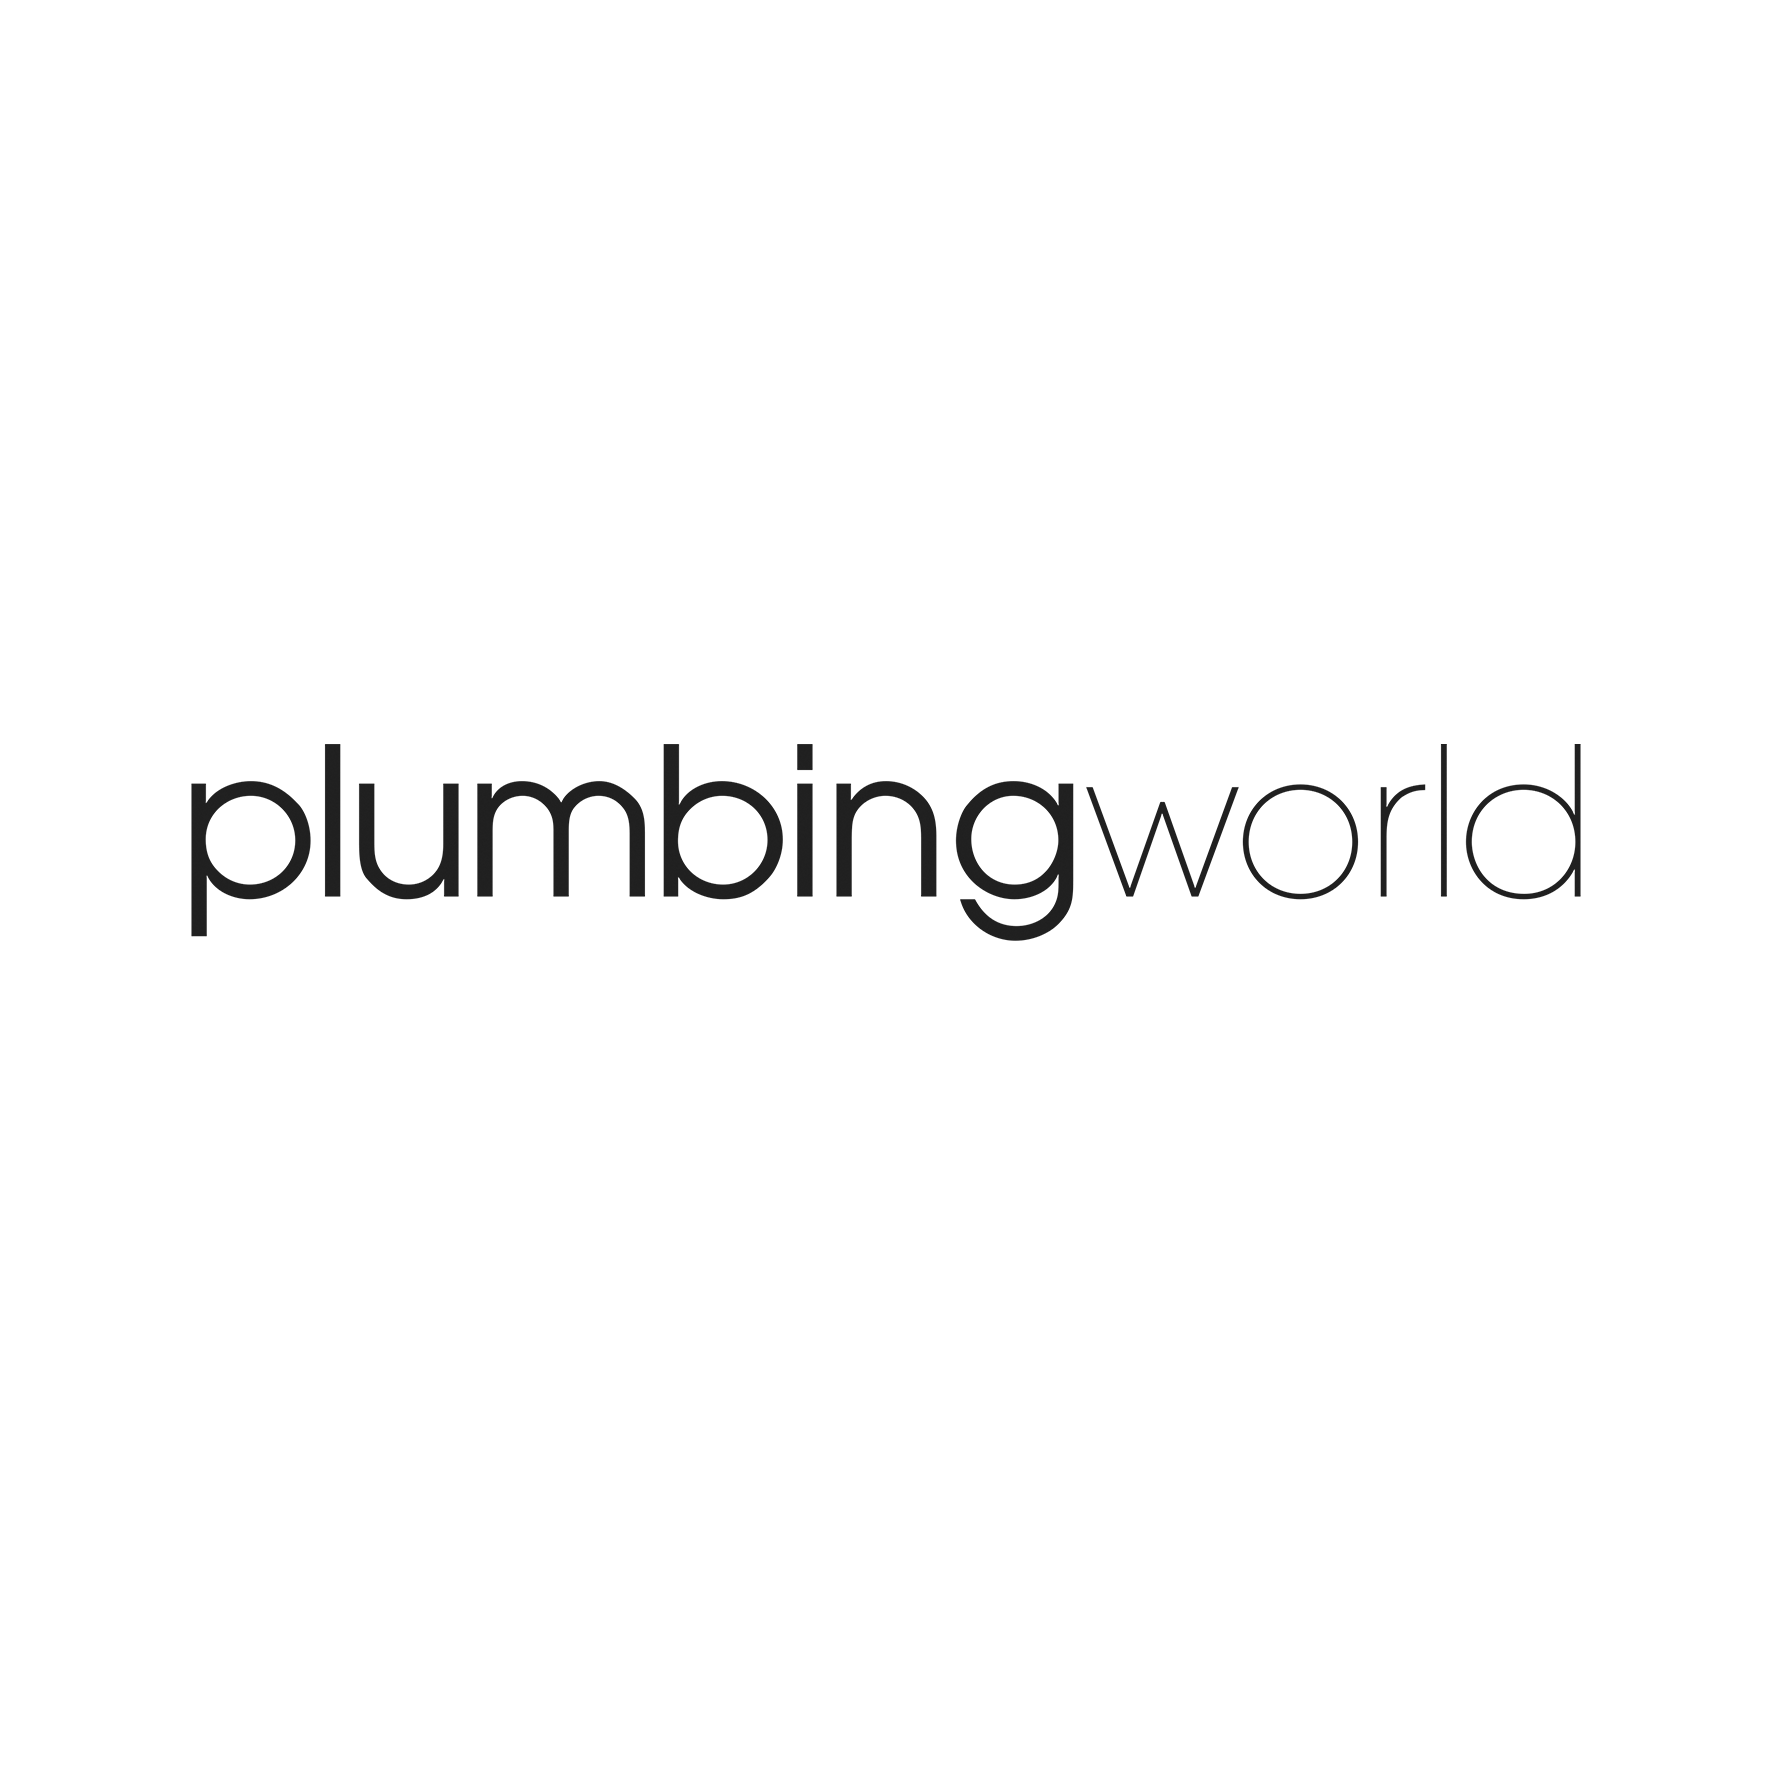 PlumbingWorld.png